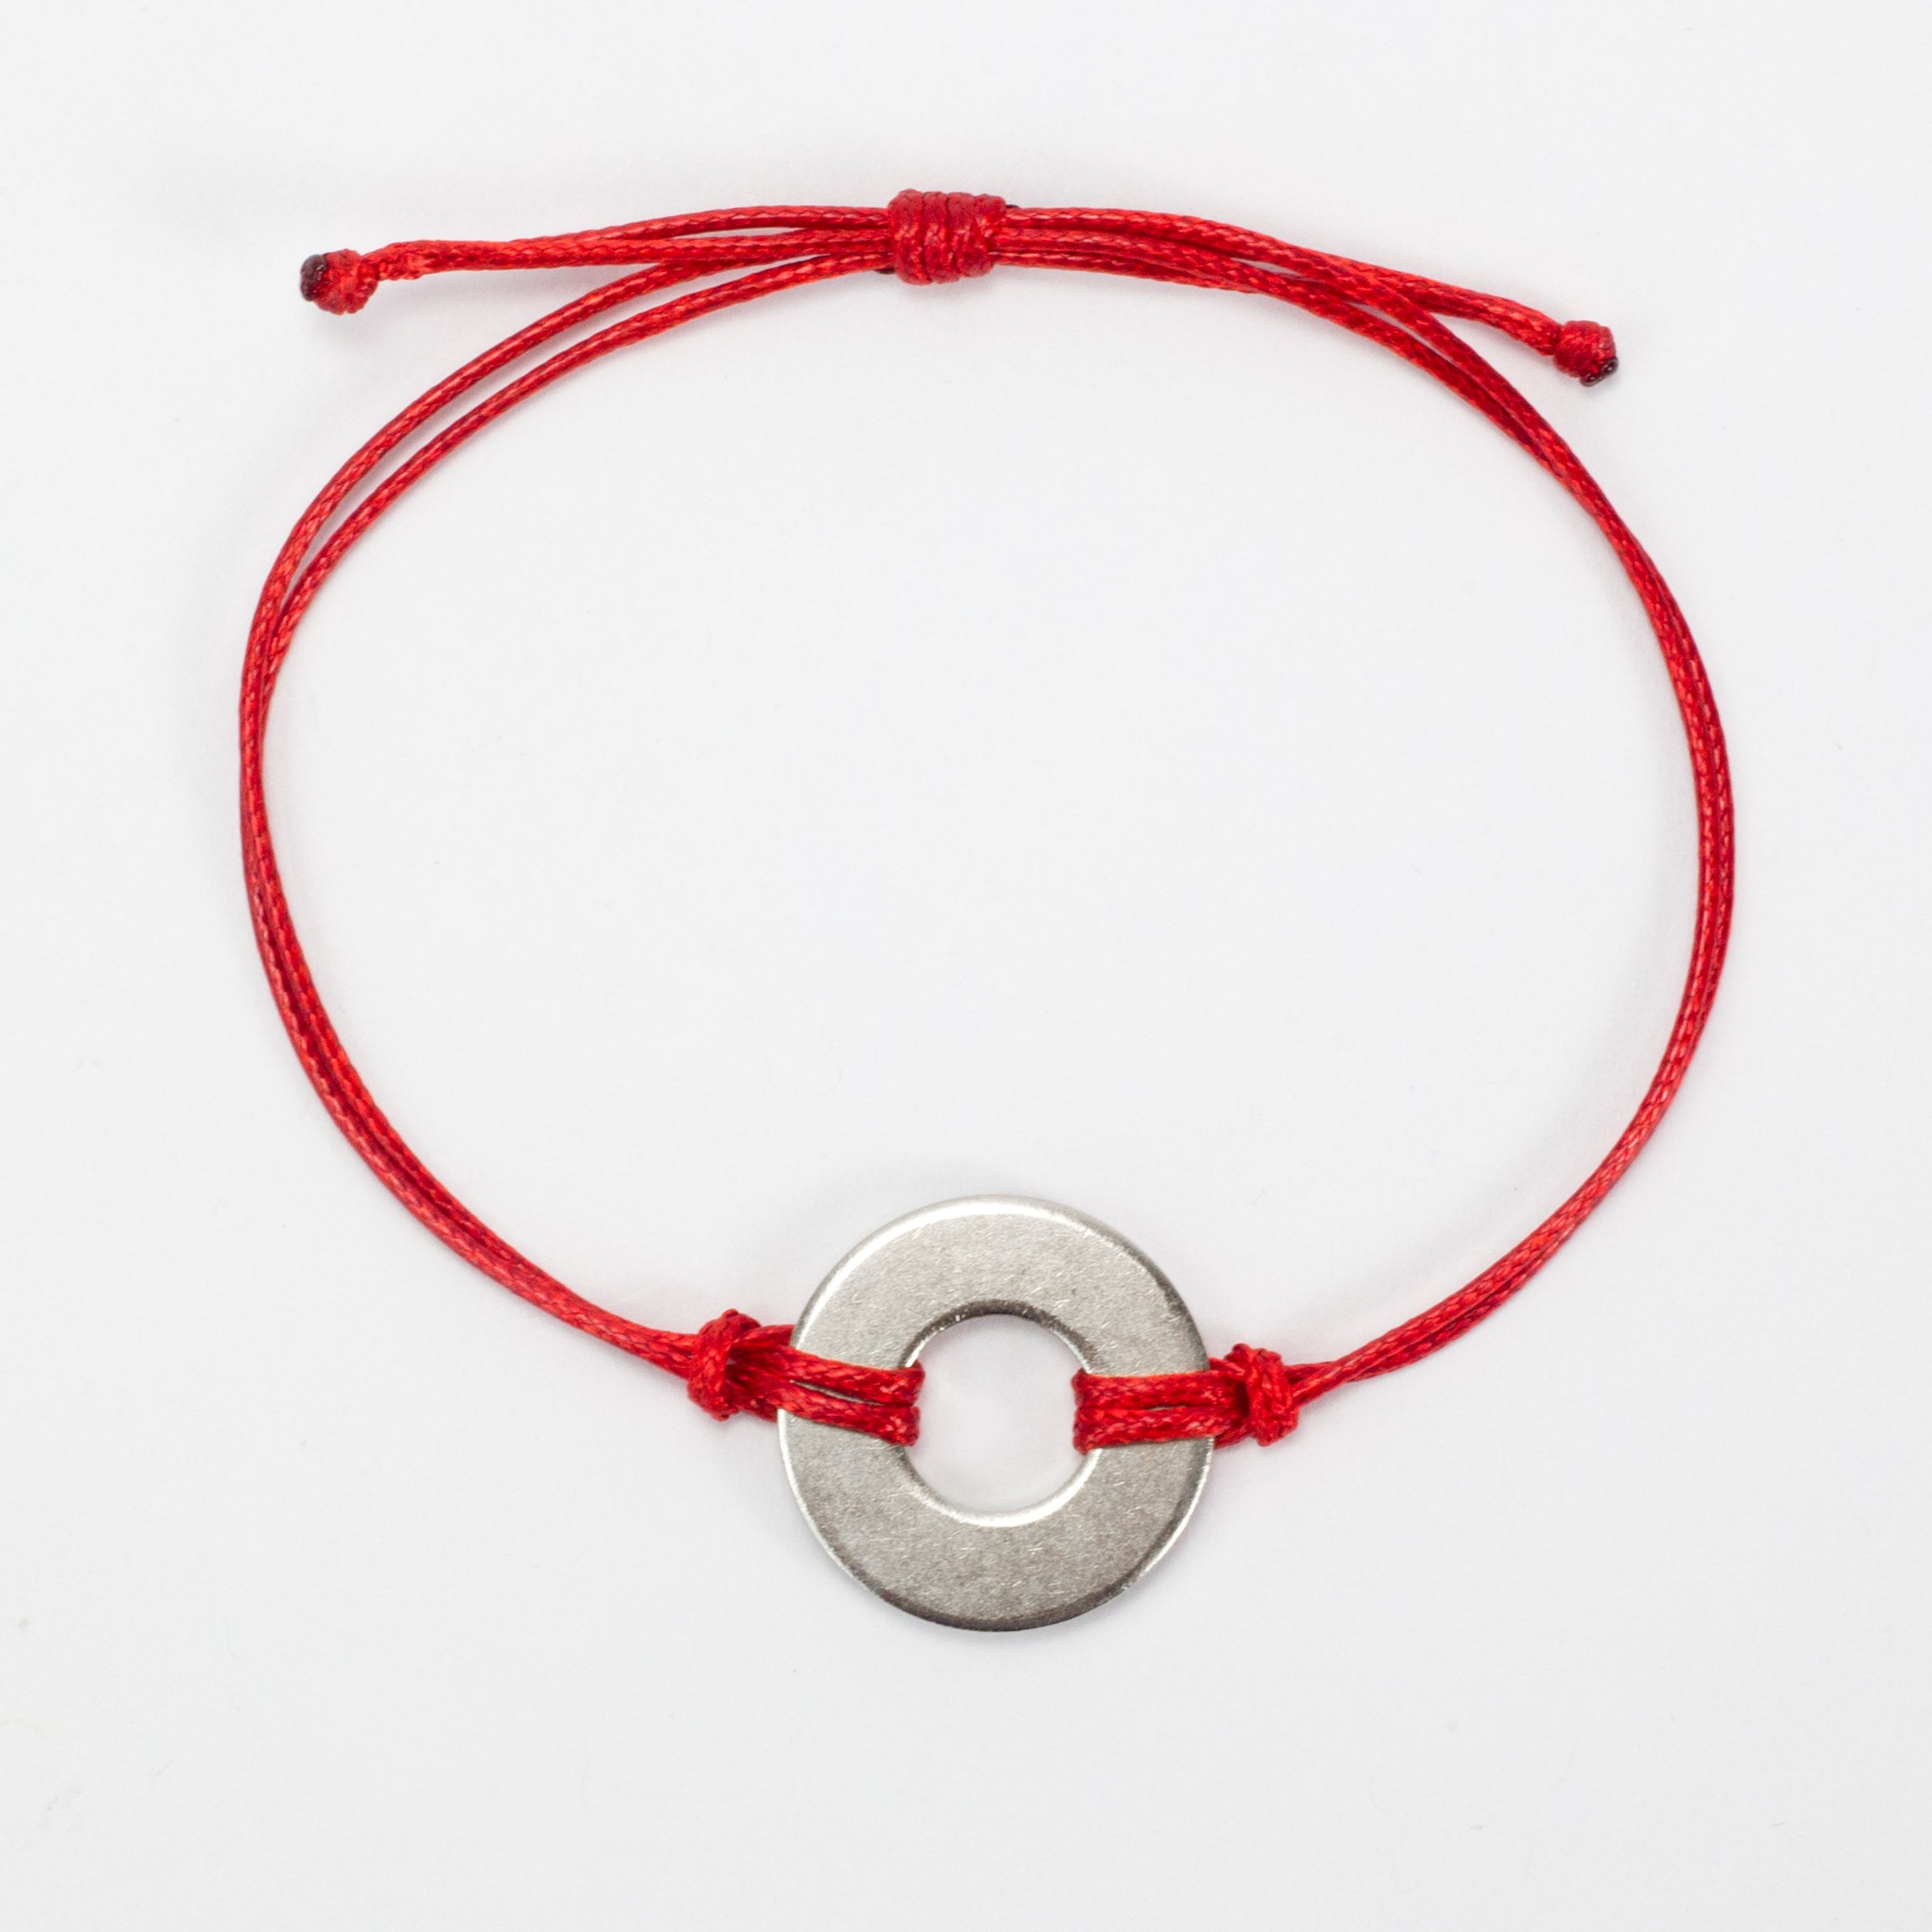 MyIntent Refill Classic Bracelet Red String with Nickel token